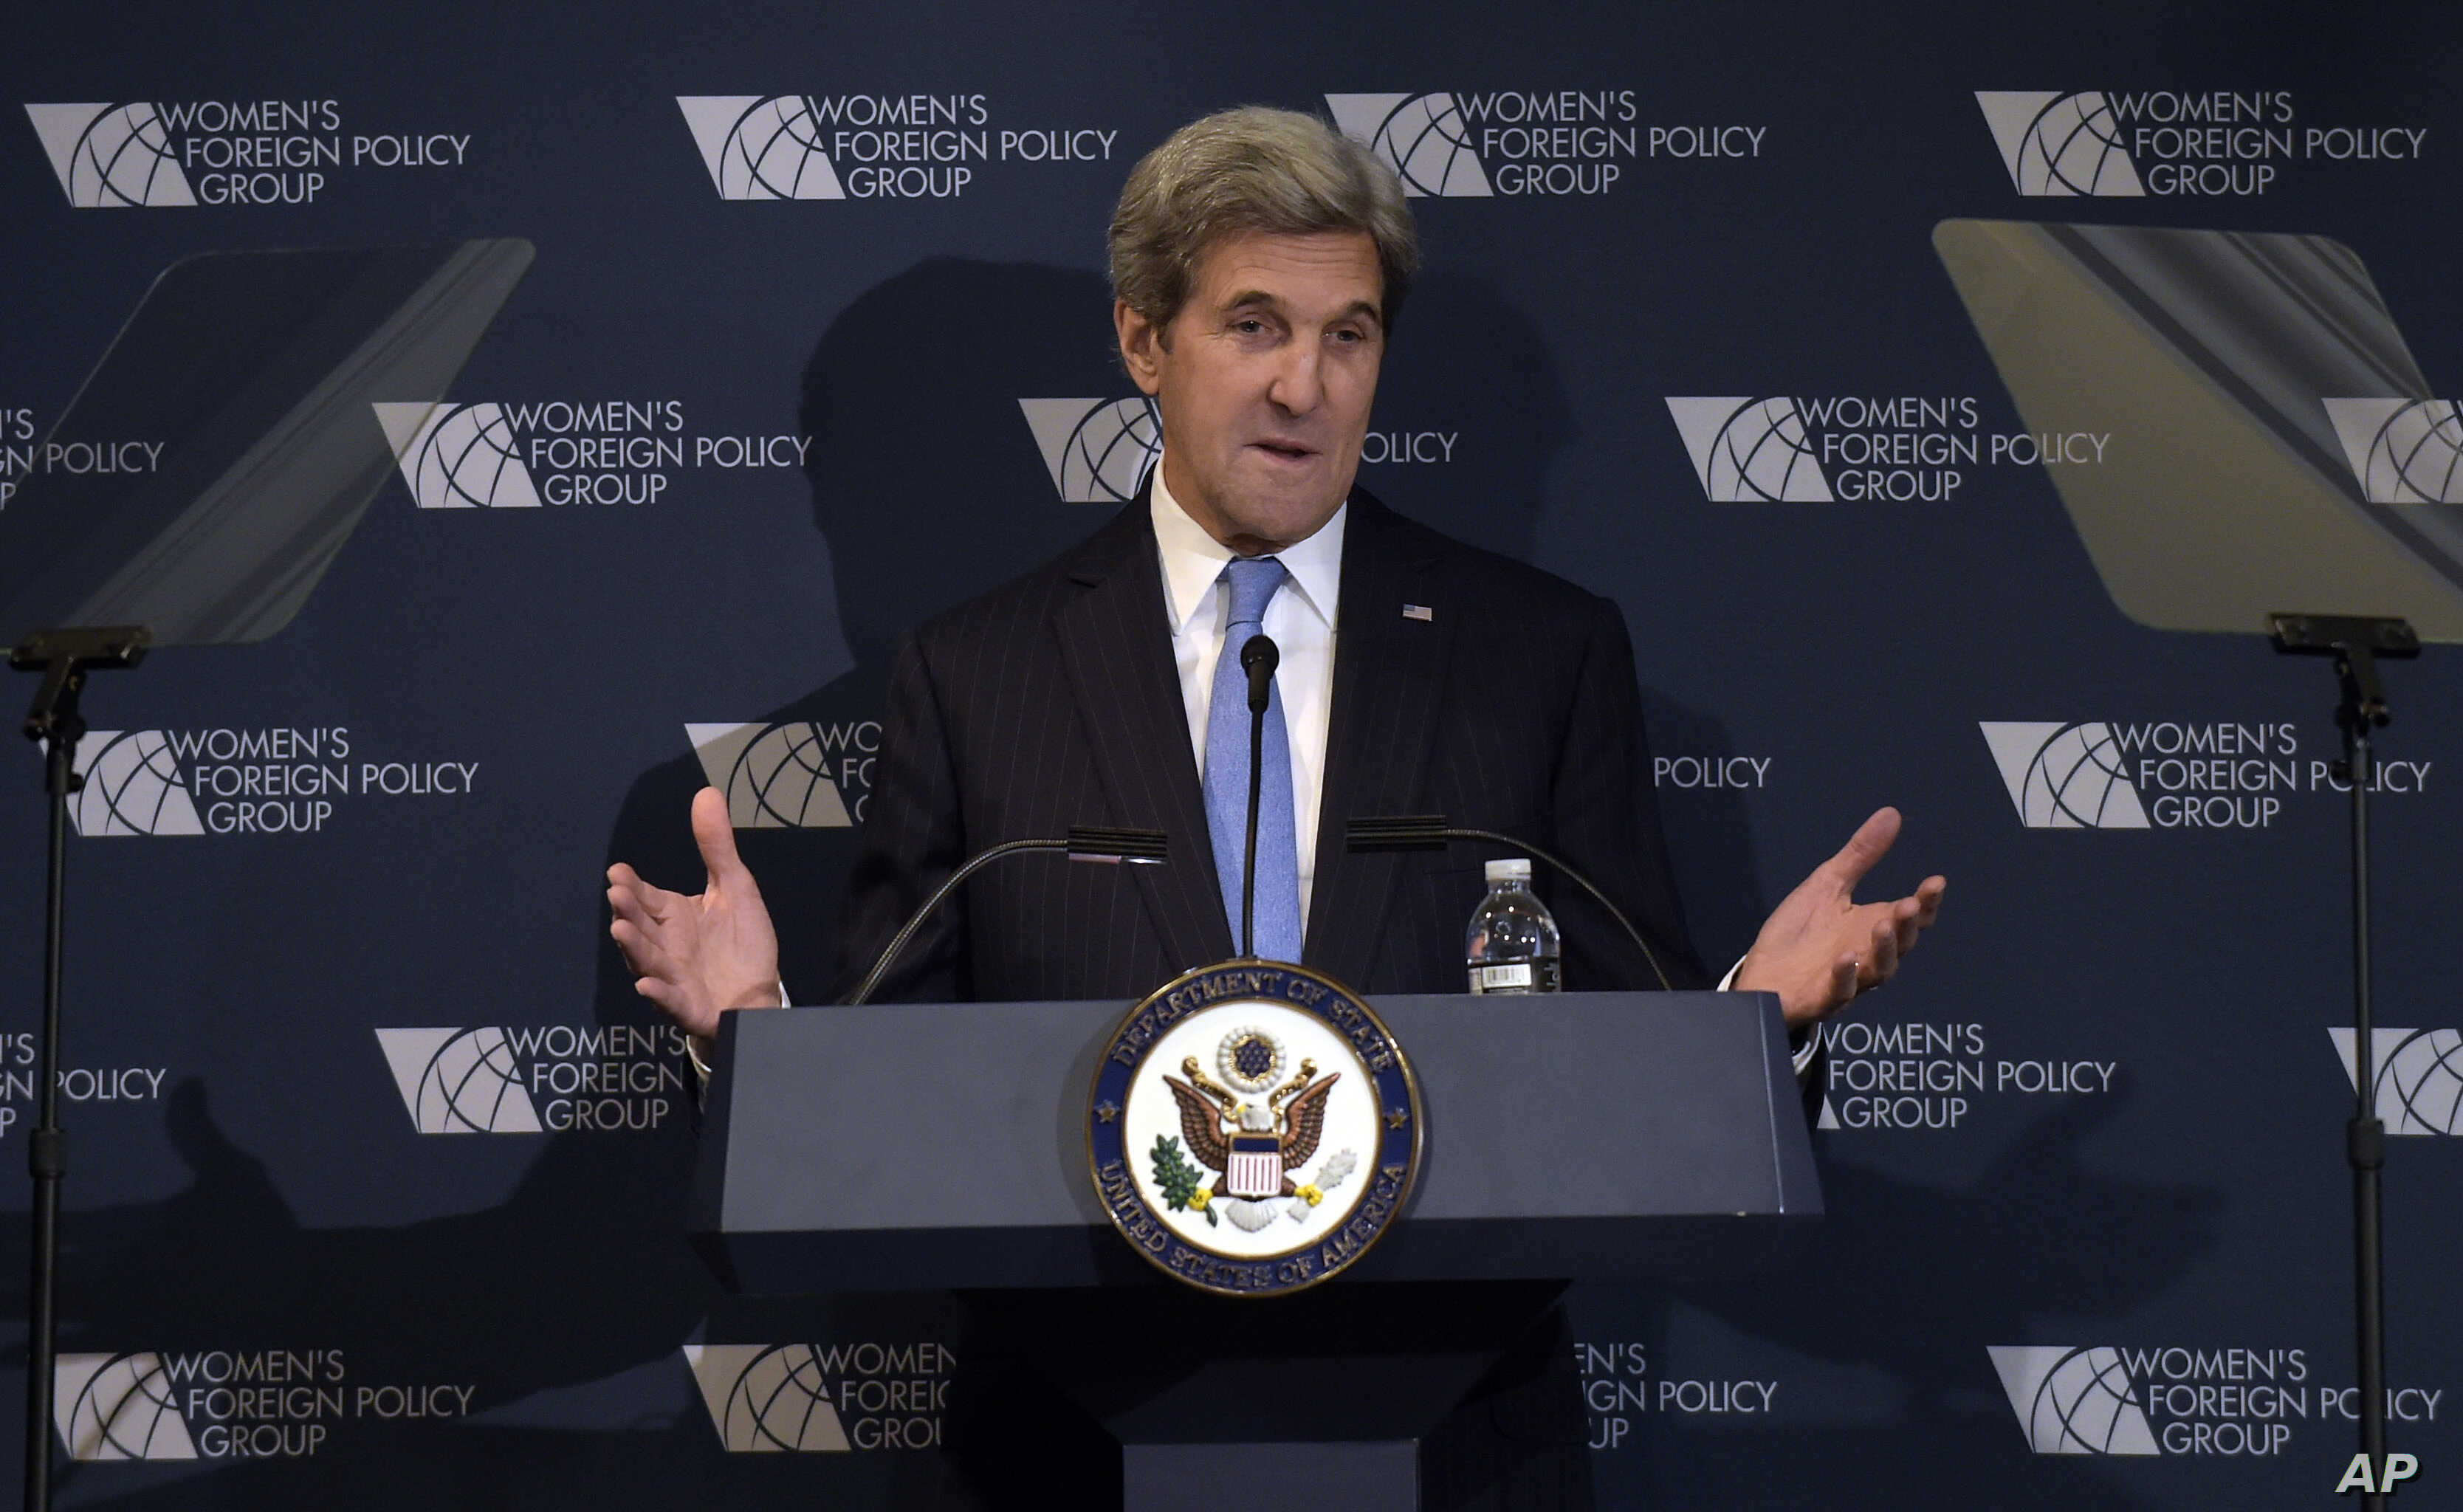 Secretary of State John Kerry speaks to the Women's Foreign Policy Group in Washington, Tuesday, Nov. 29, 2016.